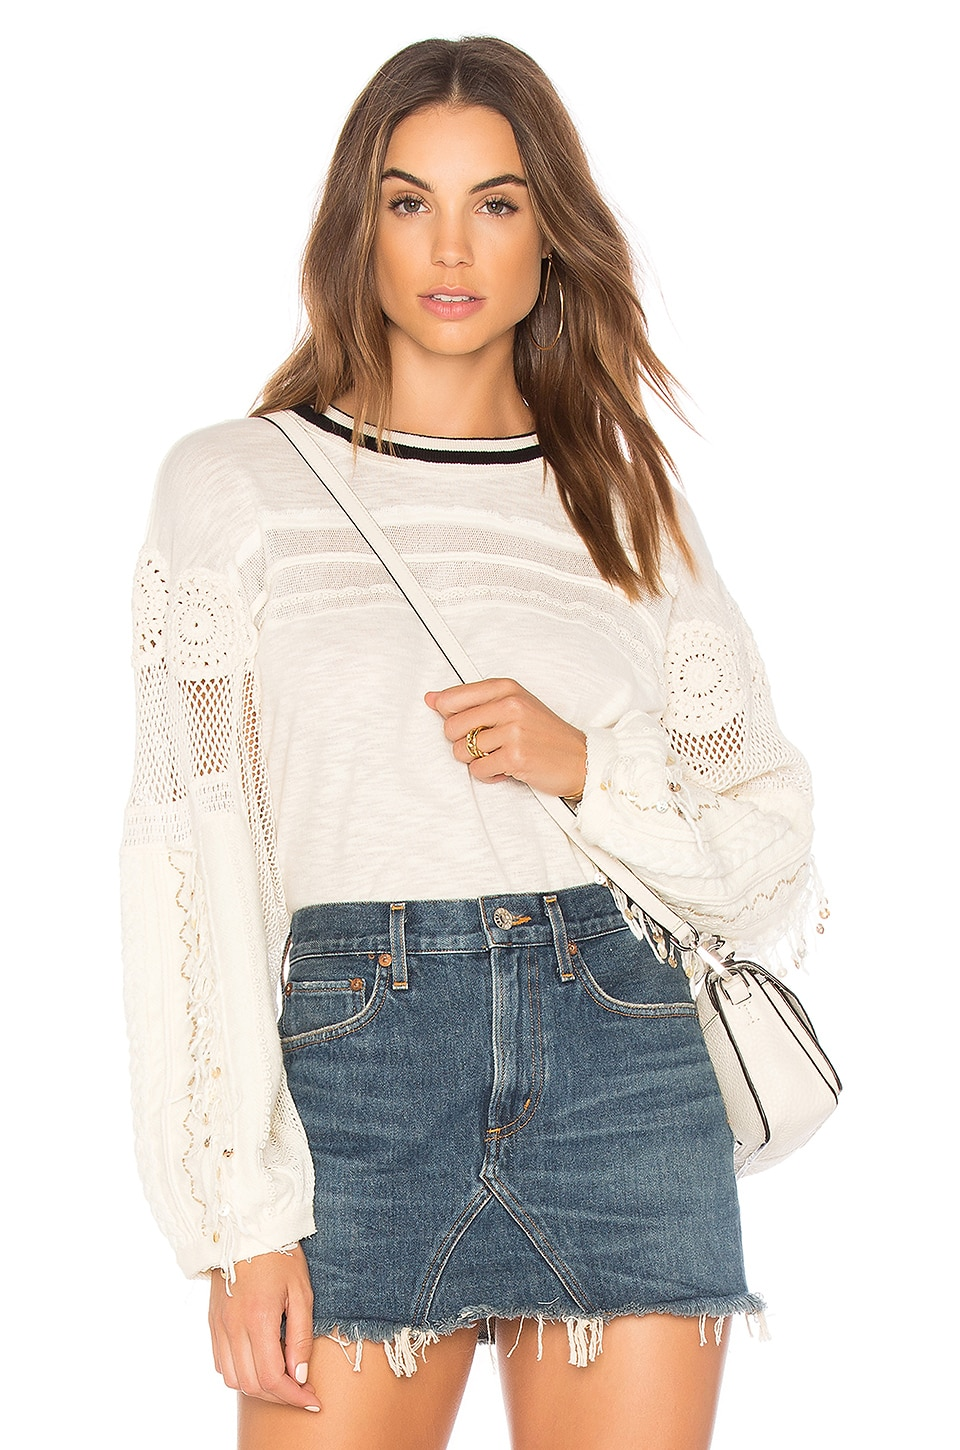 Free People Marakesh Top in Ivory